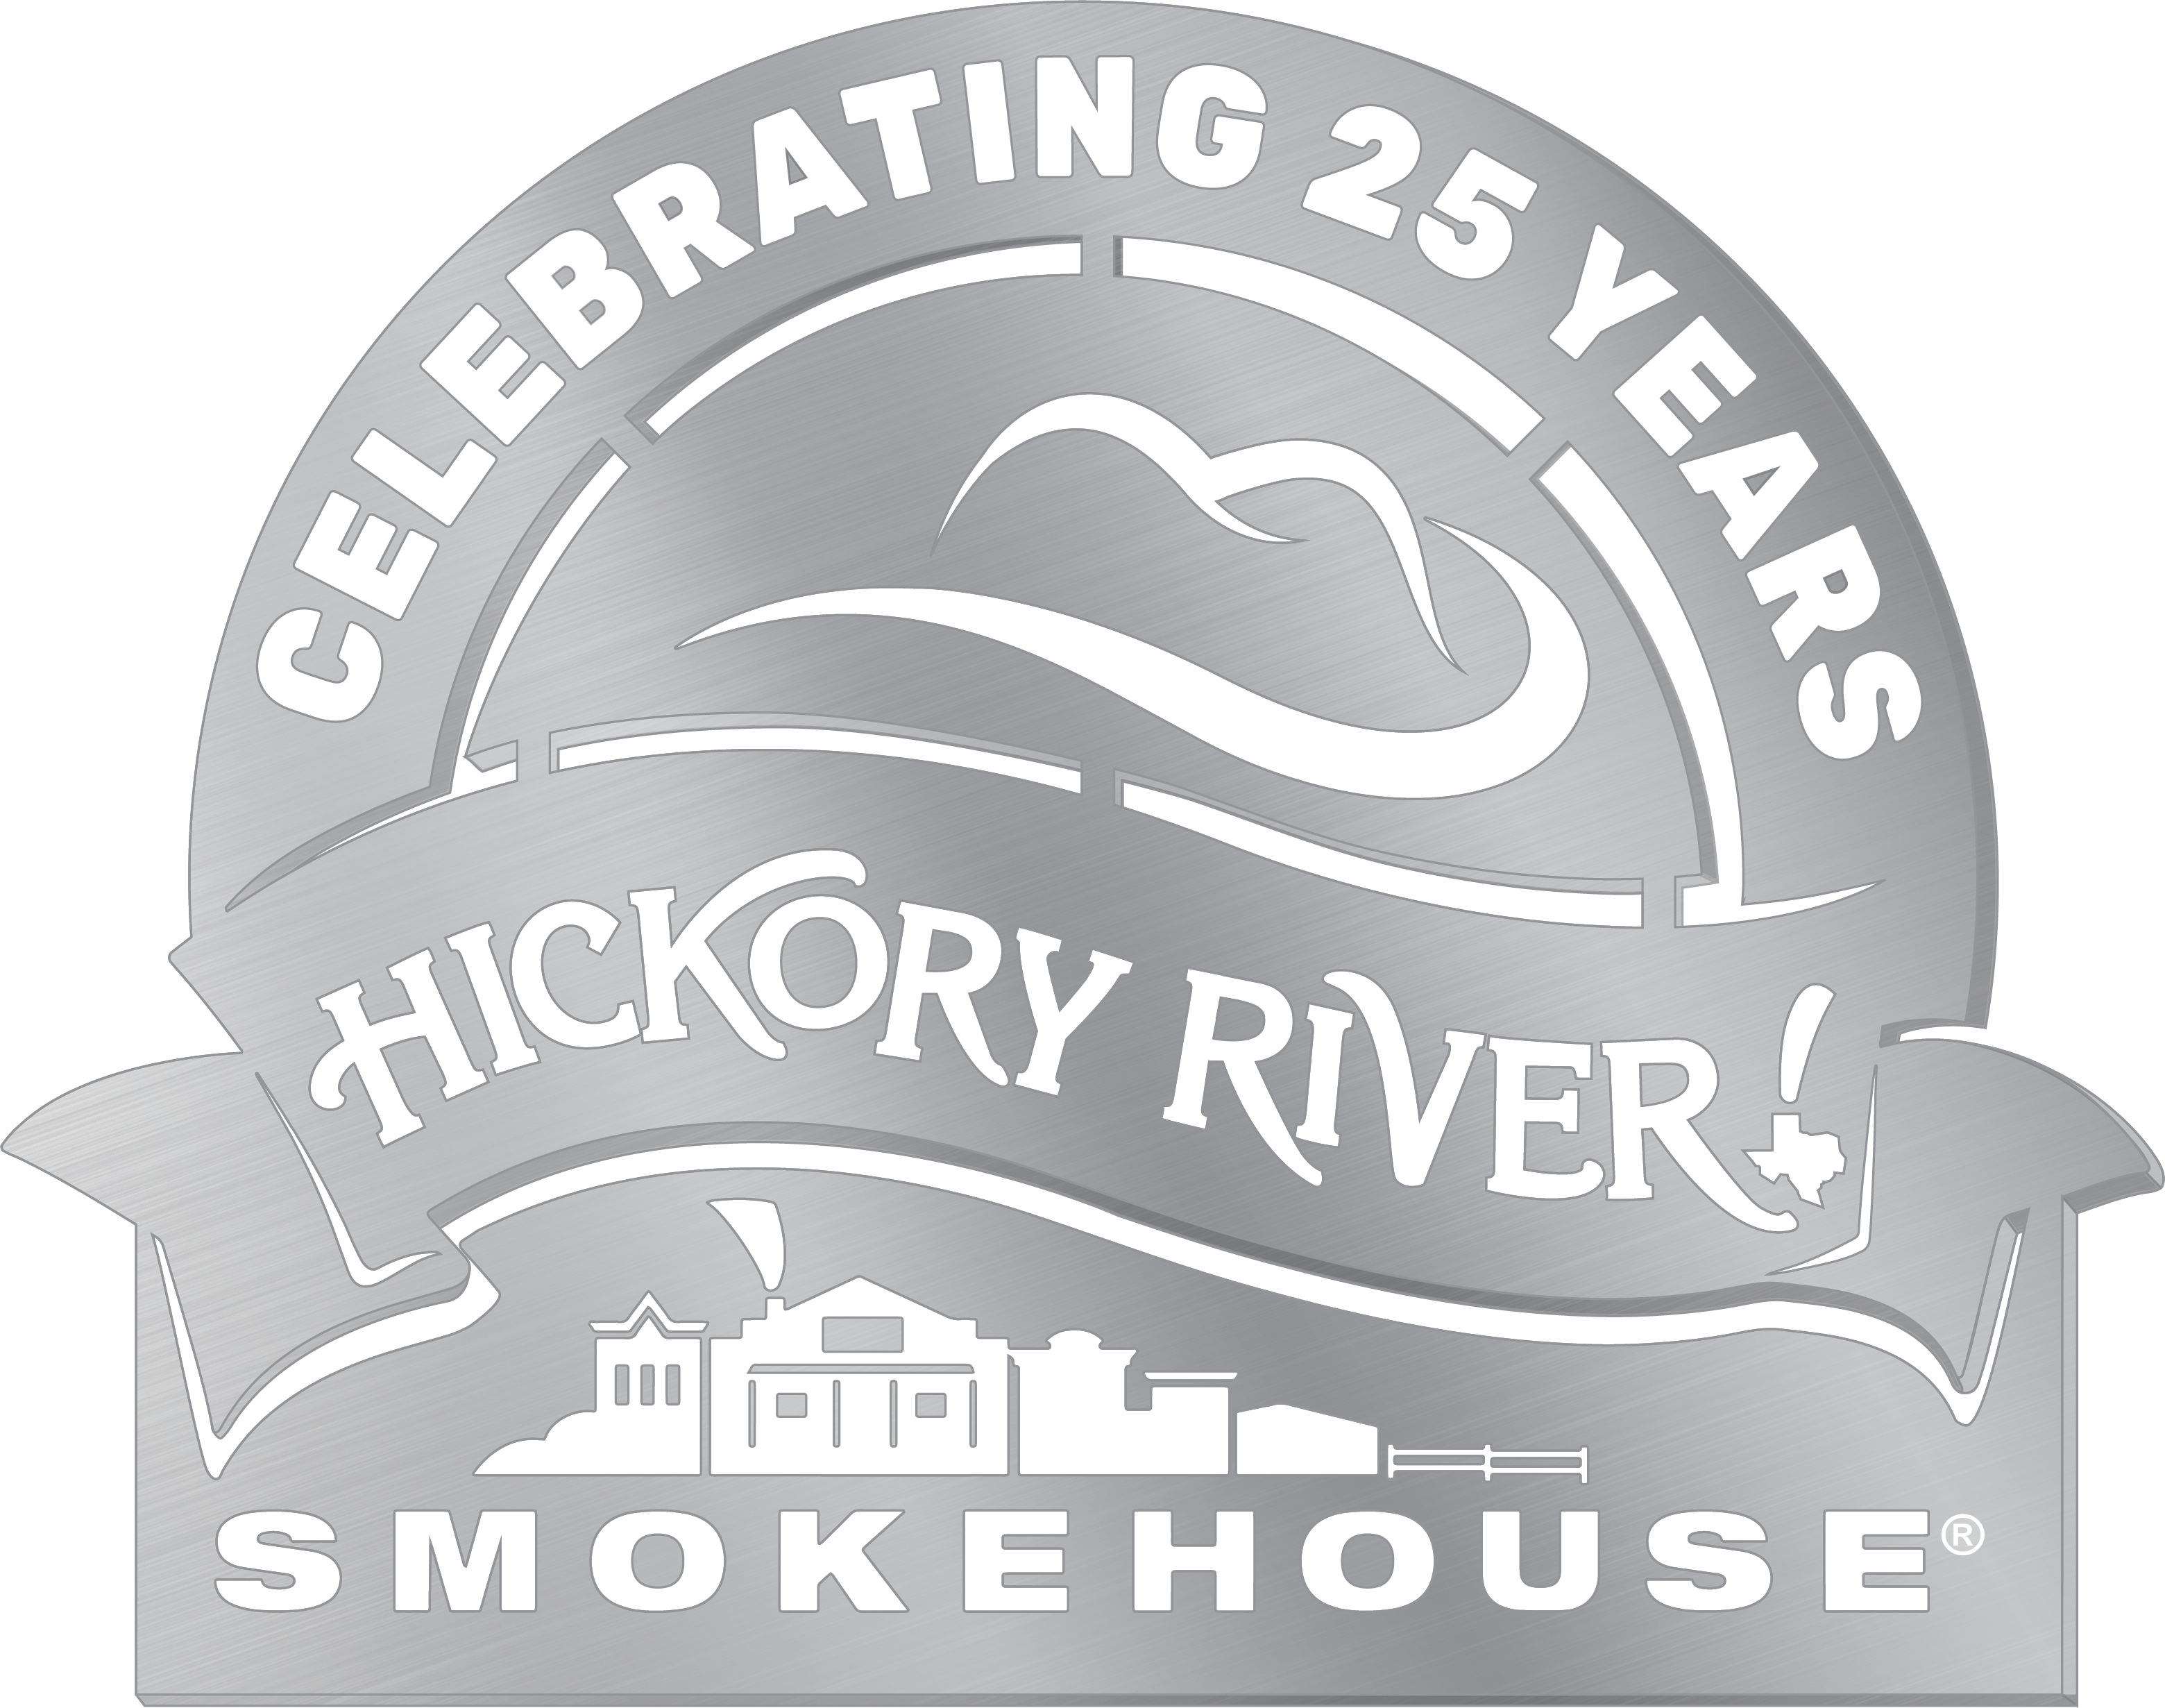 Hickory River is celebrating 25 years!